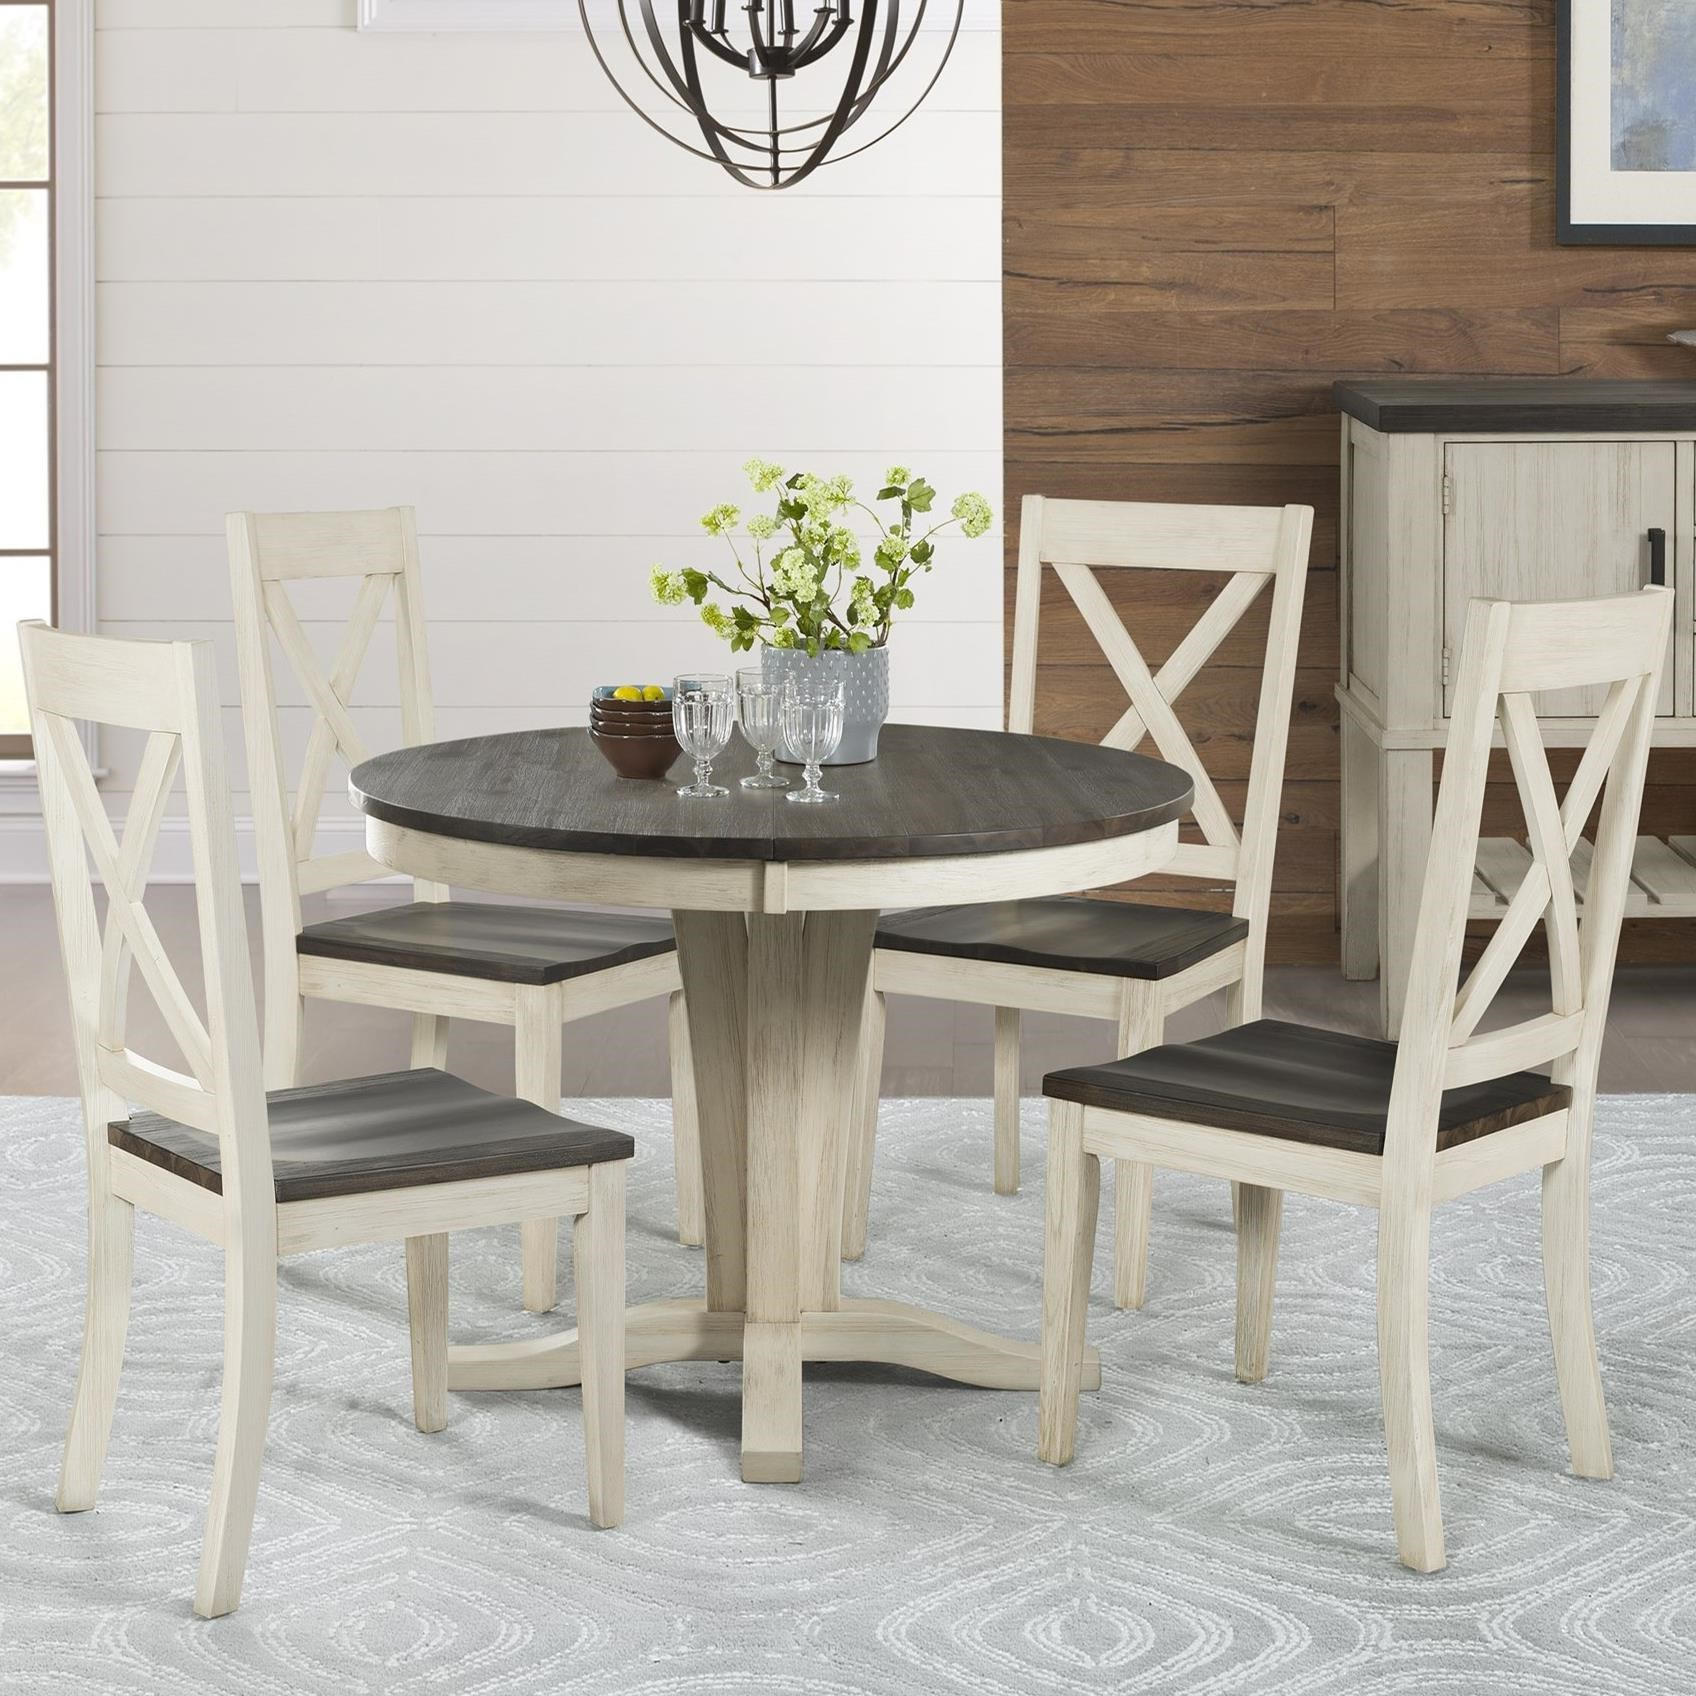 Most Recently Released Aamerica Huron 5 Piece Pedestal Table And X Back Chair Set Within Transitional 4 Seating Drop Leaf Casual Dining Tables (View 19 of 25)